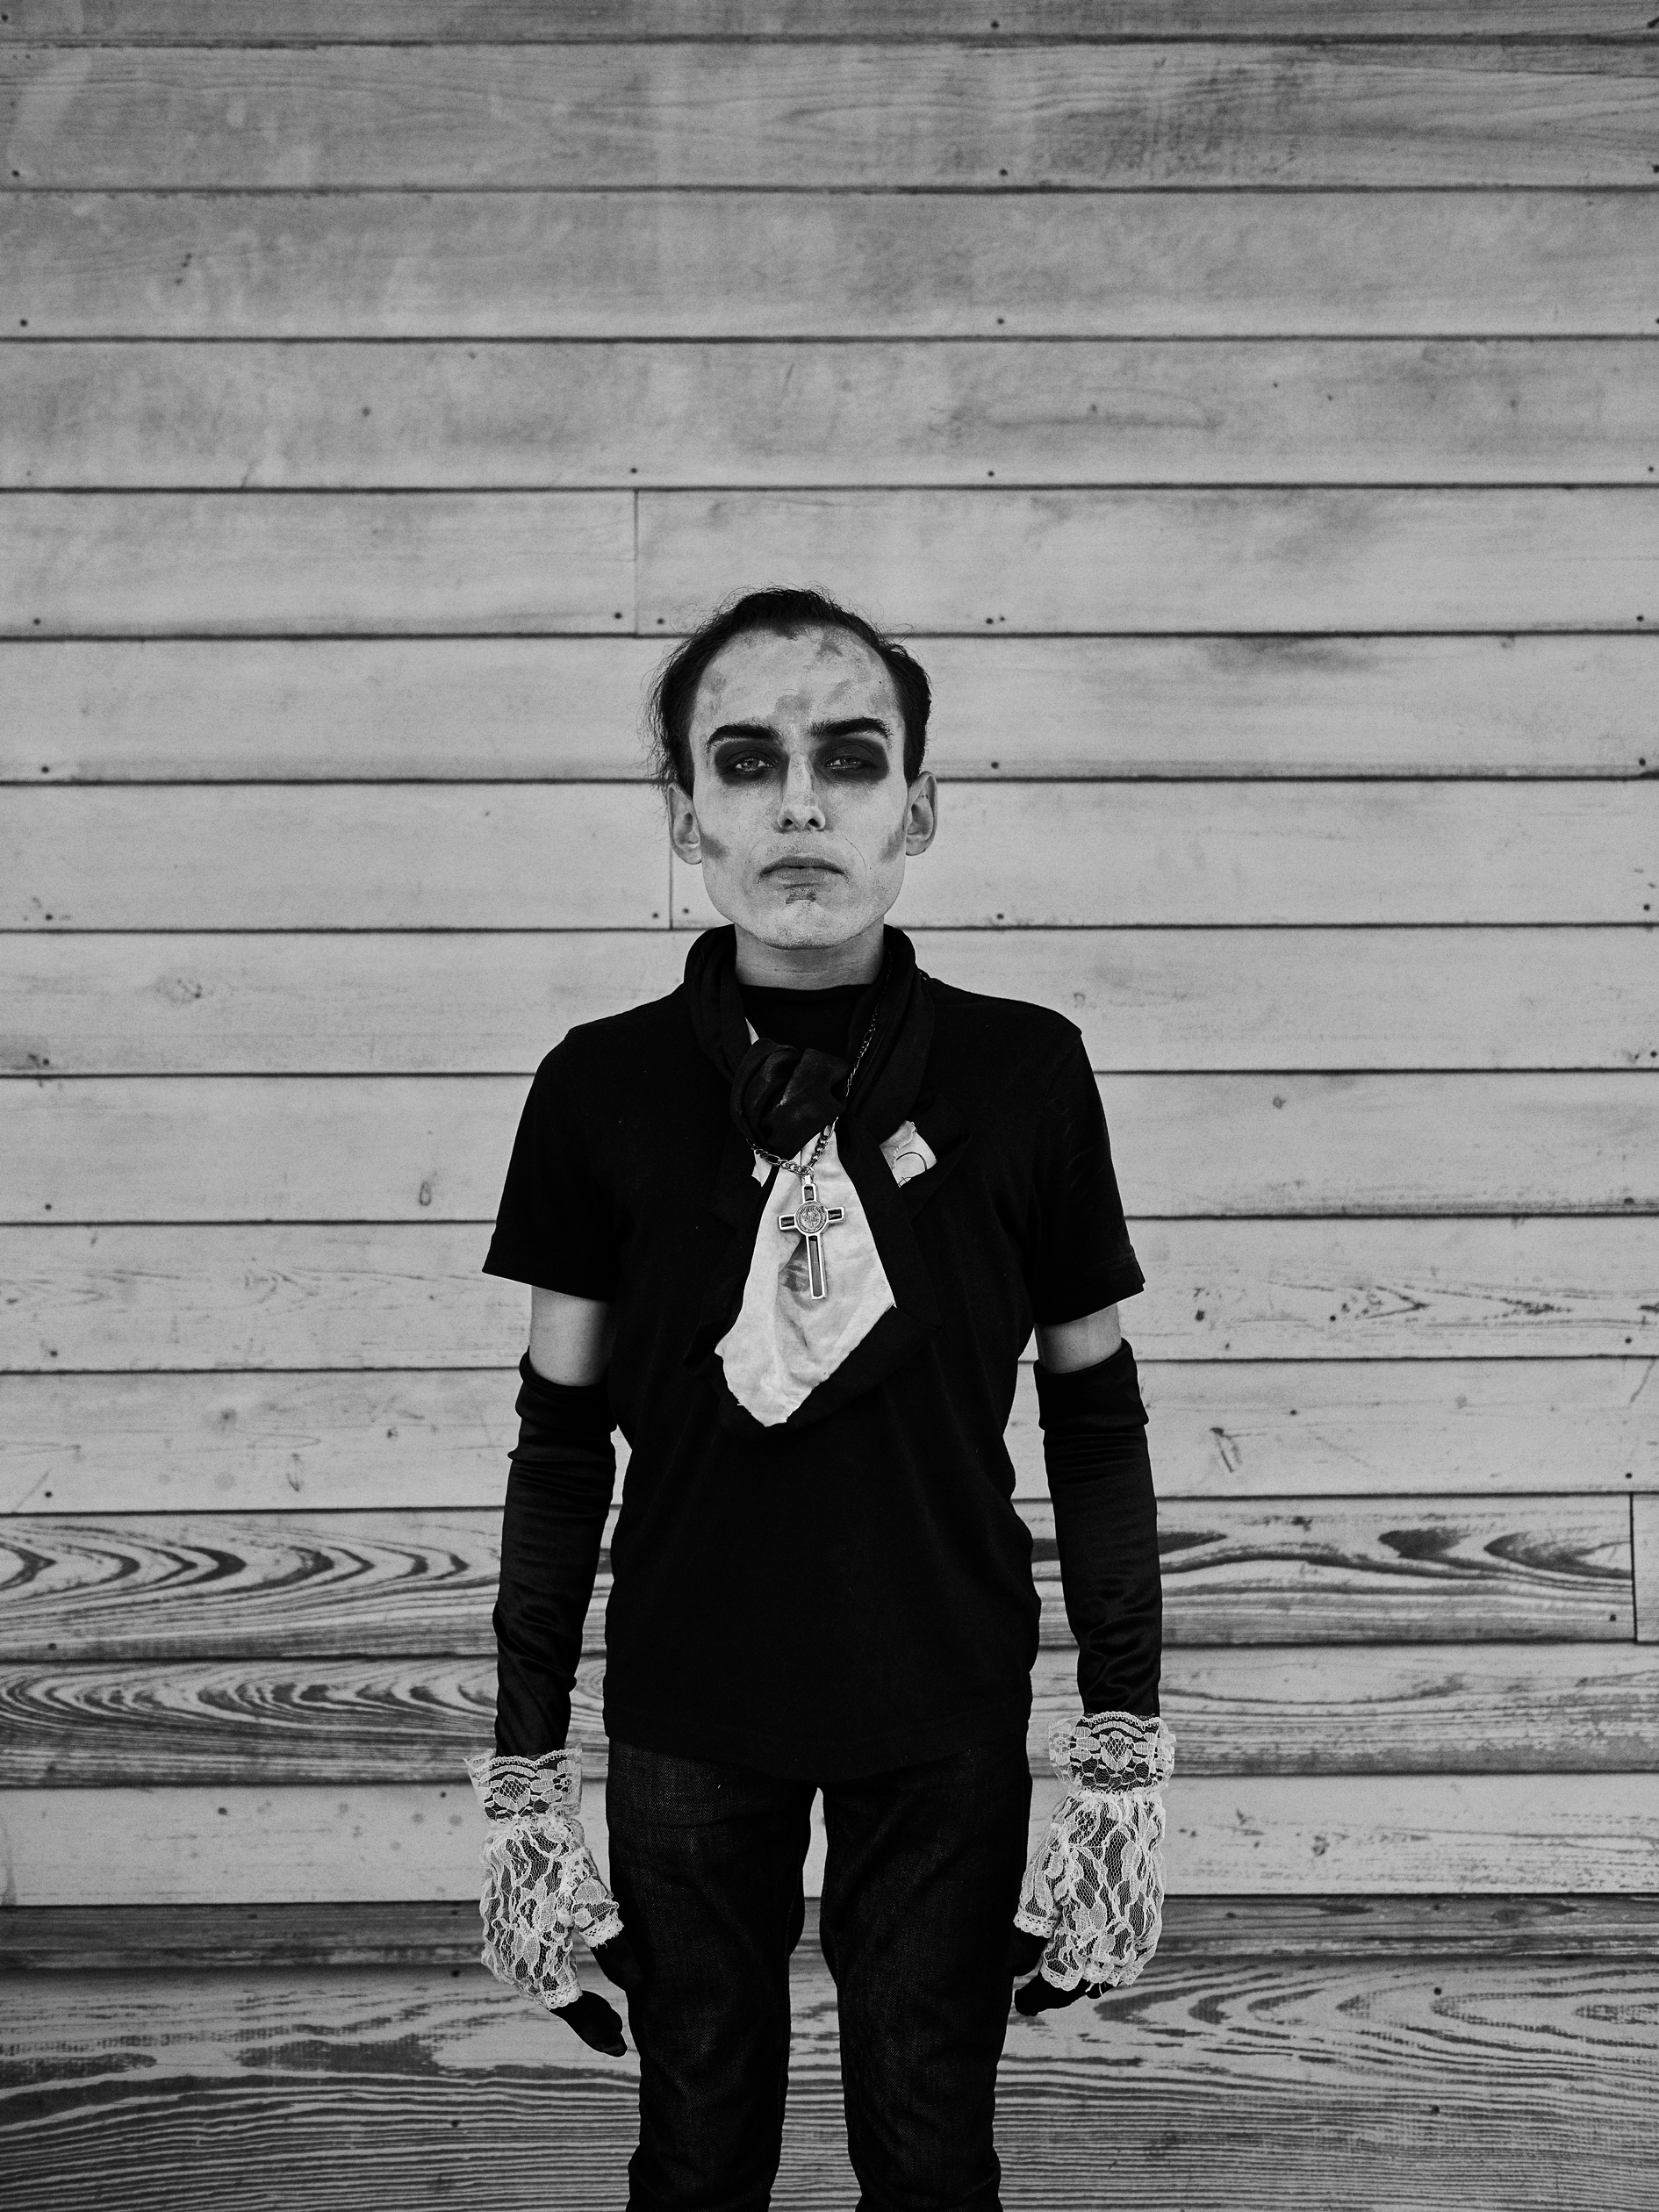 Portrait from photographic series NOLA Freak Punks by photographer Craig Mulcahy. Shot in New Orleans Louisiana. #BlackandWhite #Goth #Costume #Editorial #Commercial #Advertising